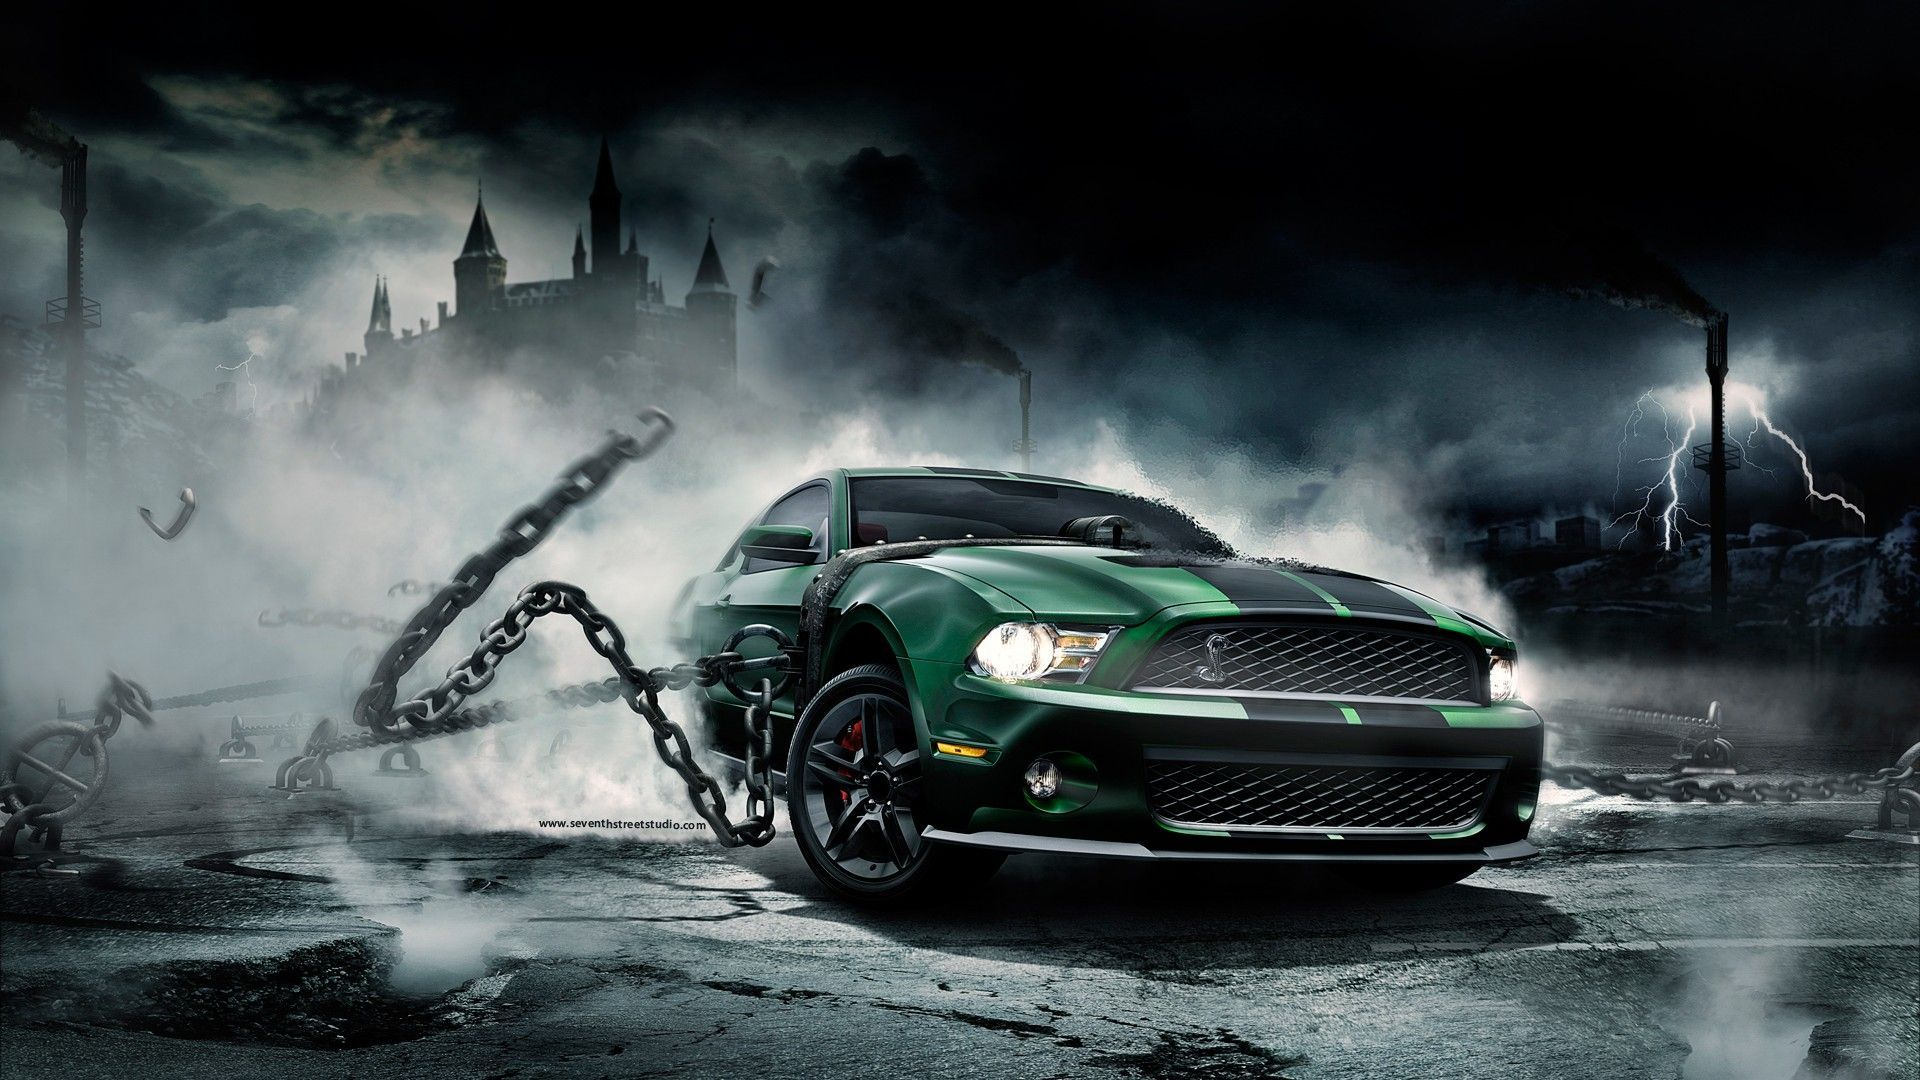 Android wallpaper theme background of mustang monster for your android phones